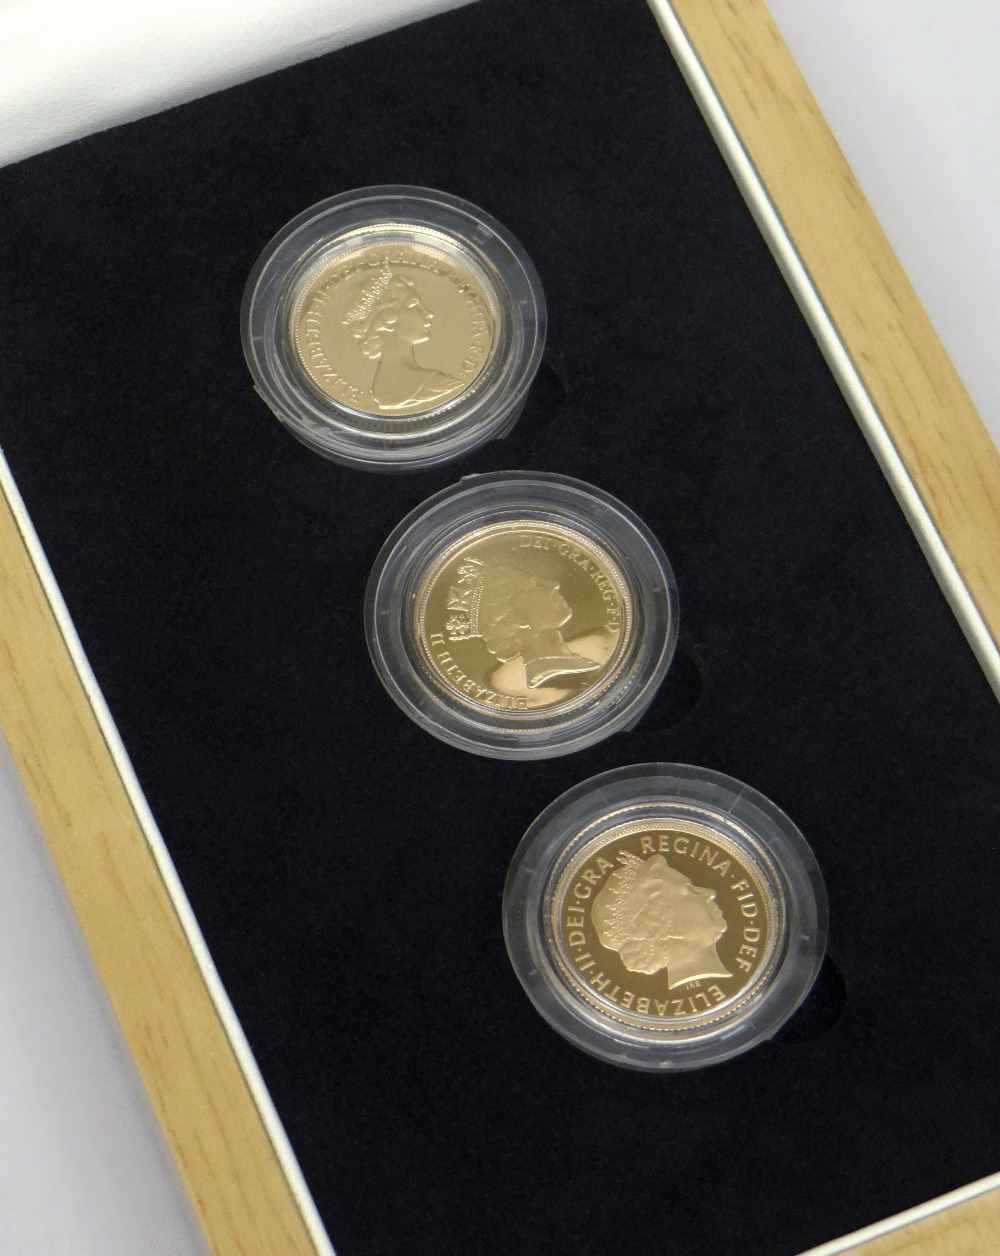 THE FACES OF QUEEN ELIZABETH II PROOF GOLD FULL SOVEREIGN THREE COIN SET dated 1980, 1985 and 2006